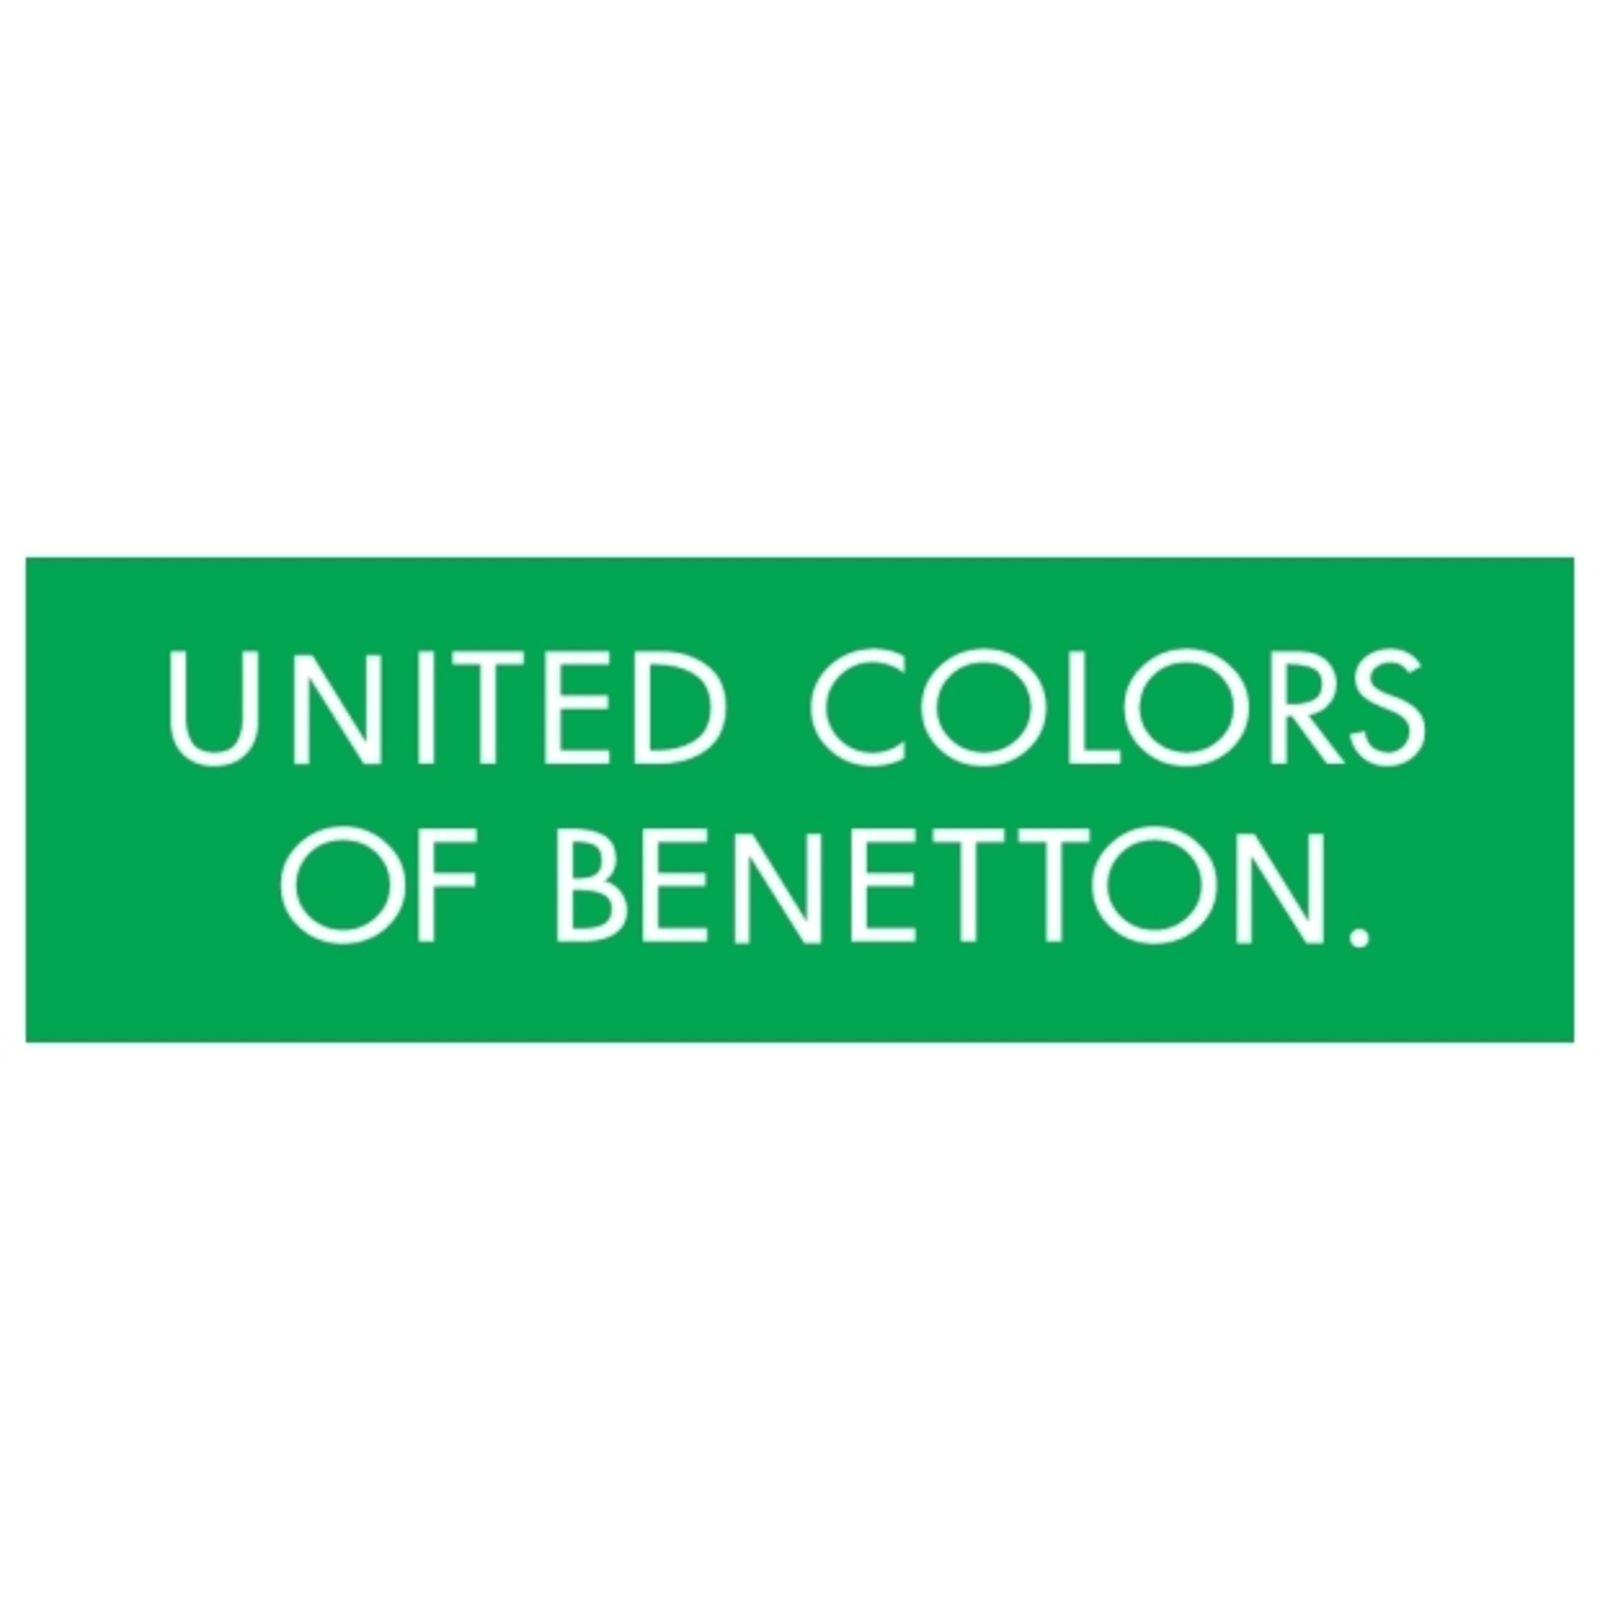 UNDERCOLORS OF BENETTON (Bild 1)